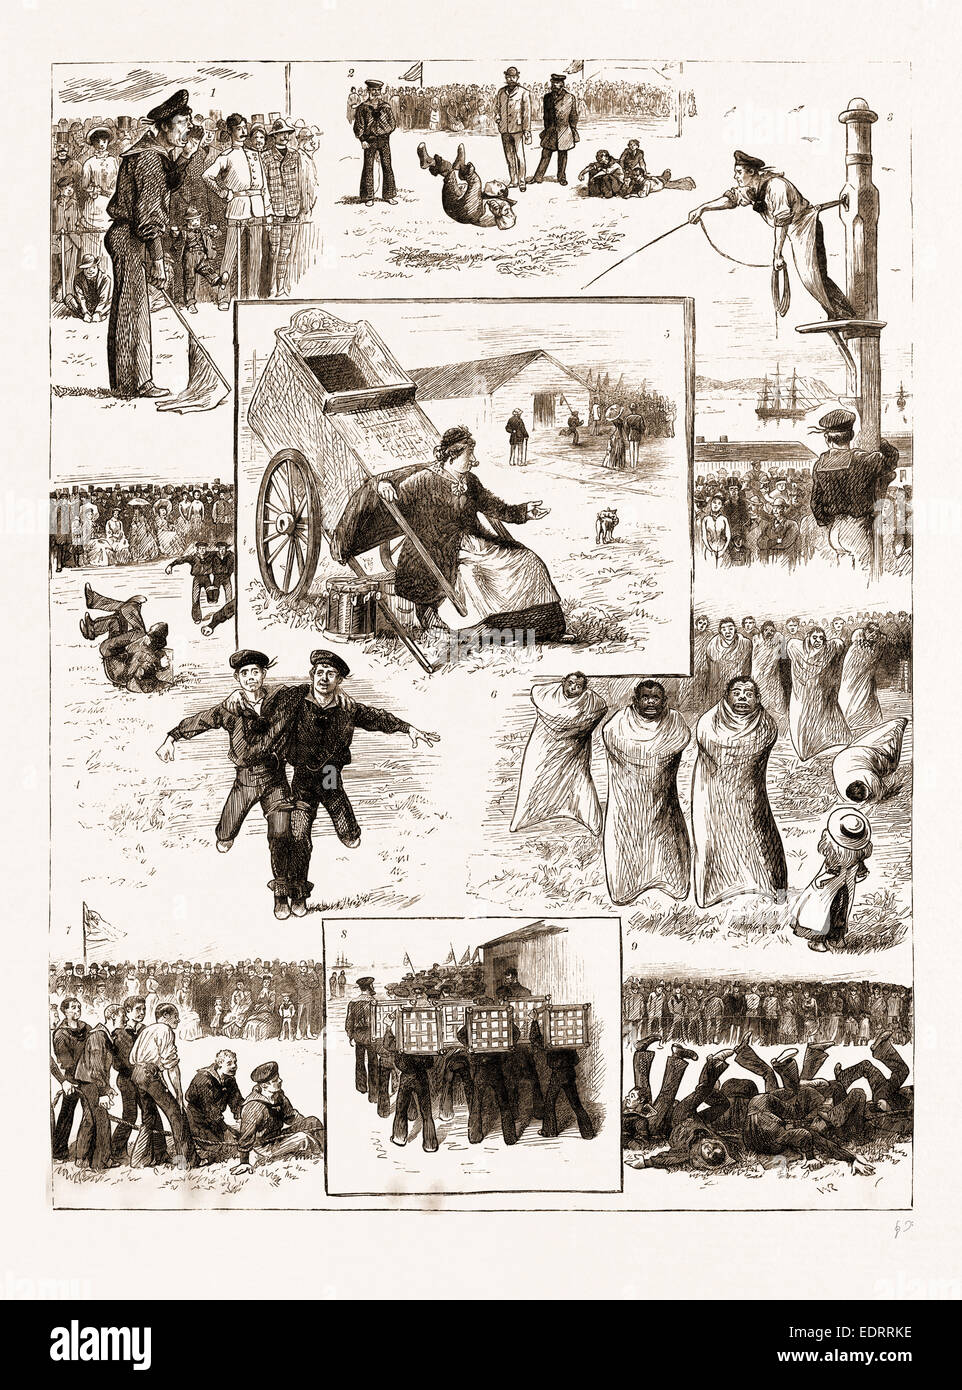 ATHLETIC SPORTS BY BOYS OF A TRAINING SHIP, 1883: 1. 'Hall 'Ands for Three-Legged Race, Fall In.' - Stock Image